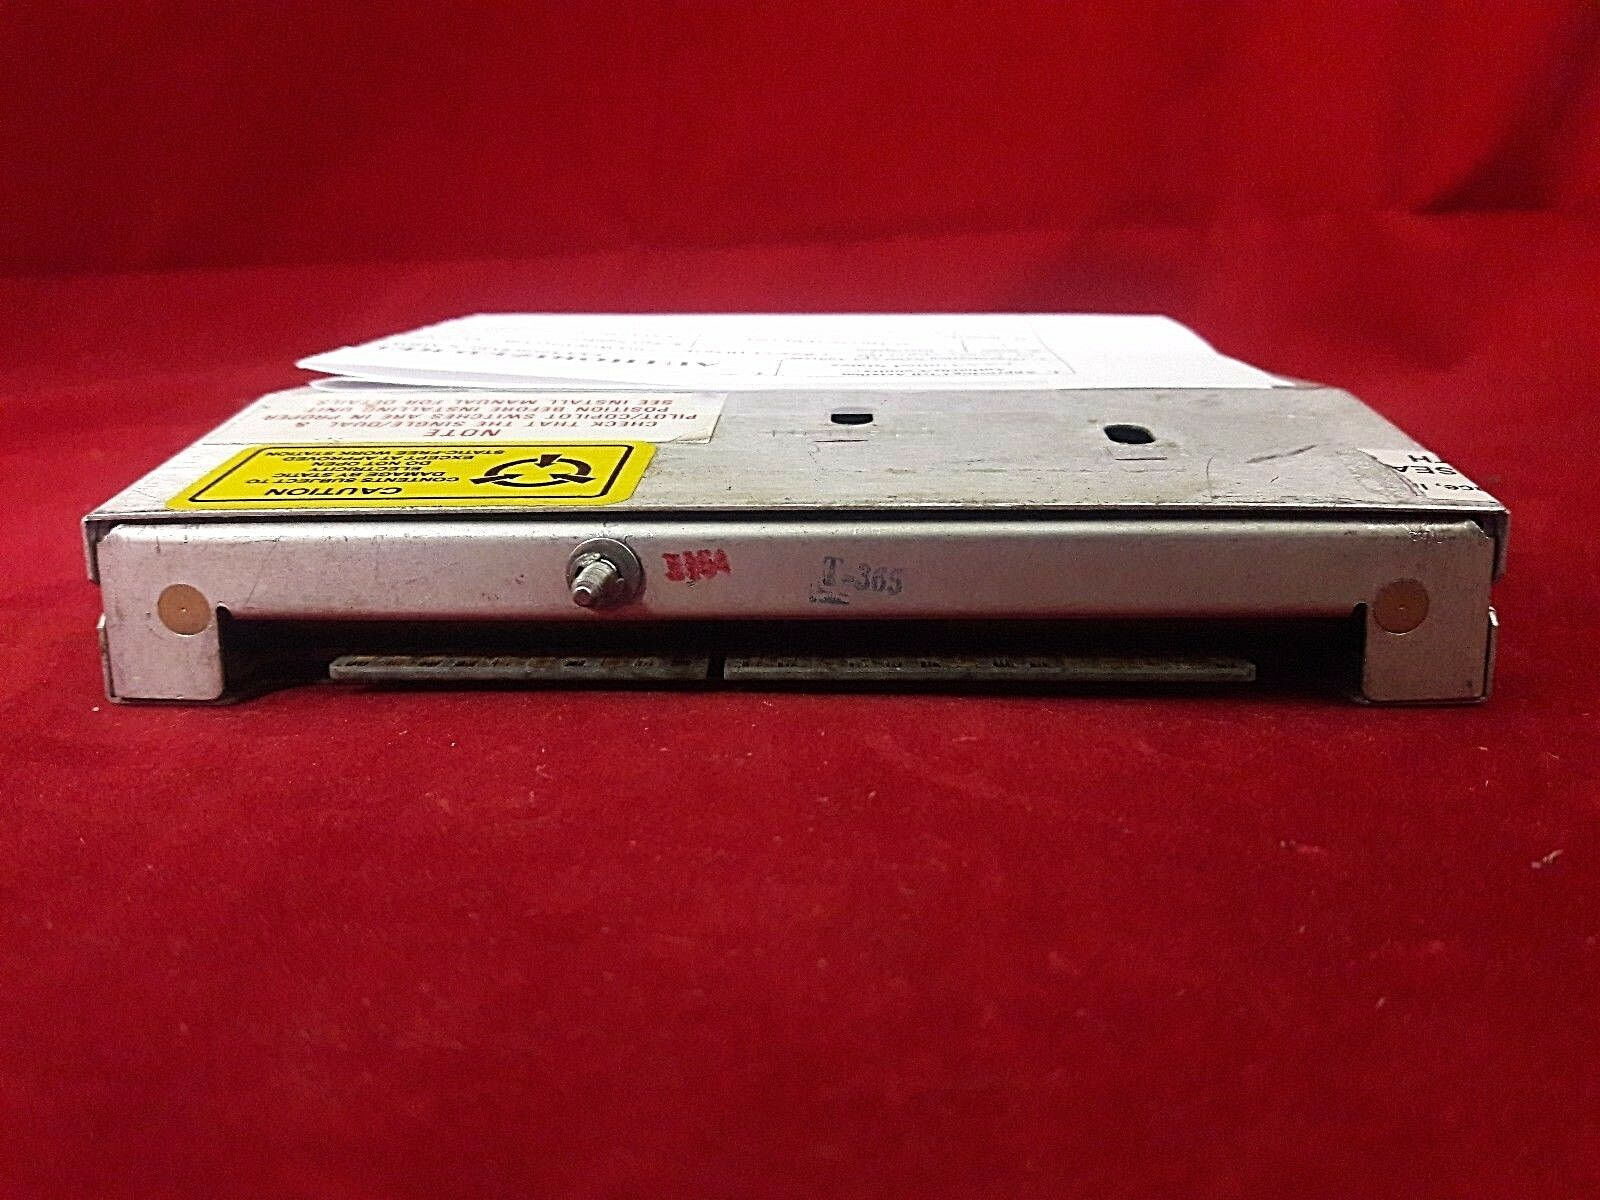 Bendix/King/Honeywell KMA-24H P/N 066-1055-70 With Fresh 8130 Exchange $695.